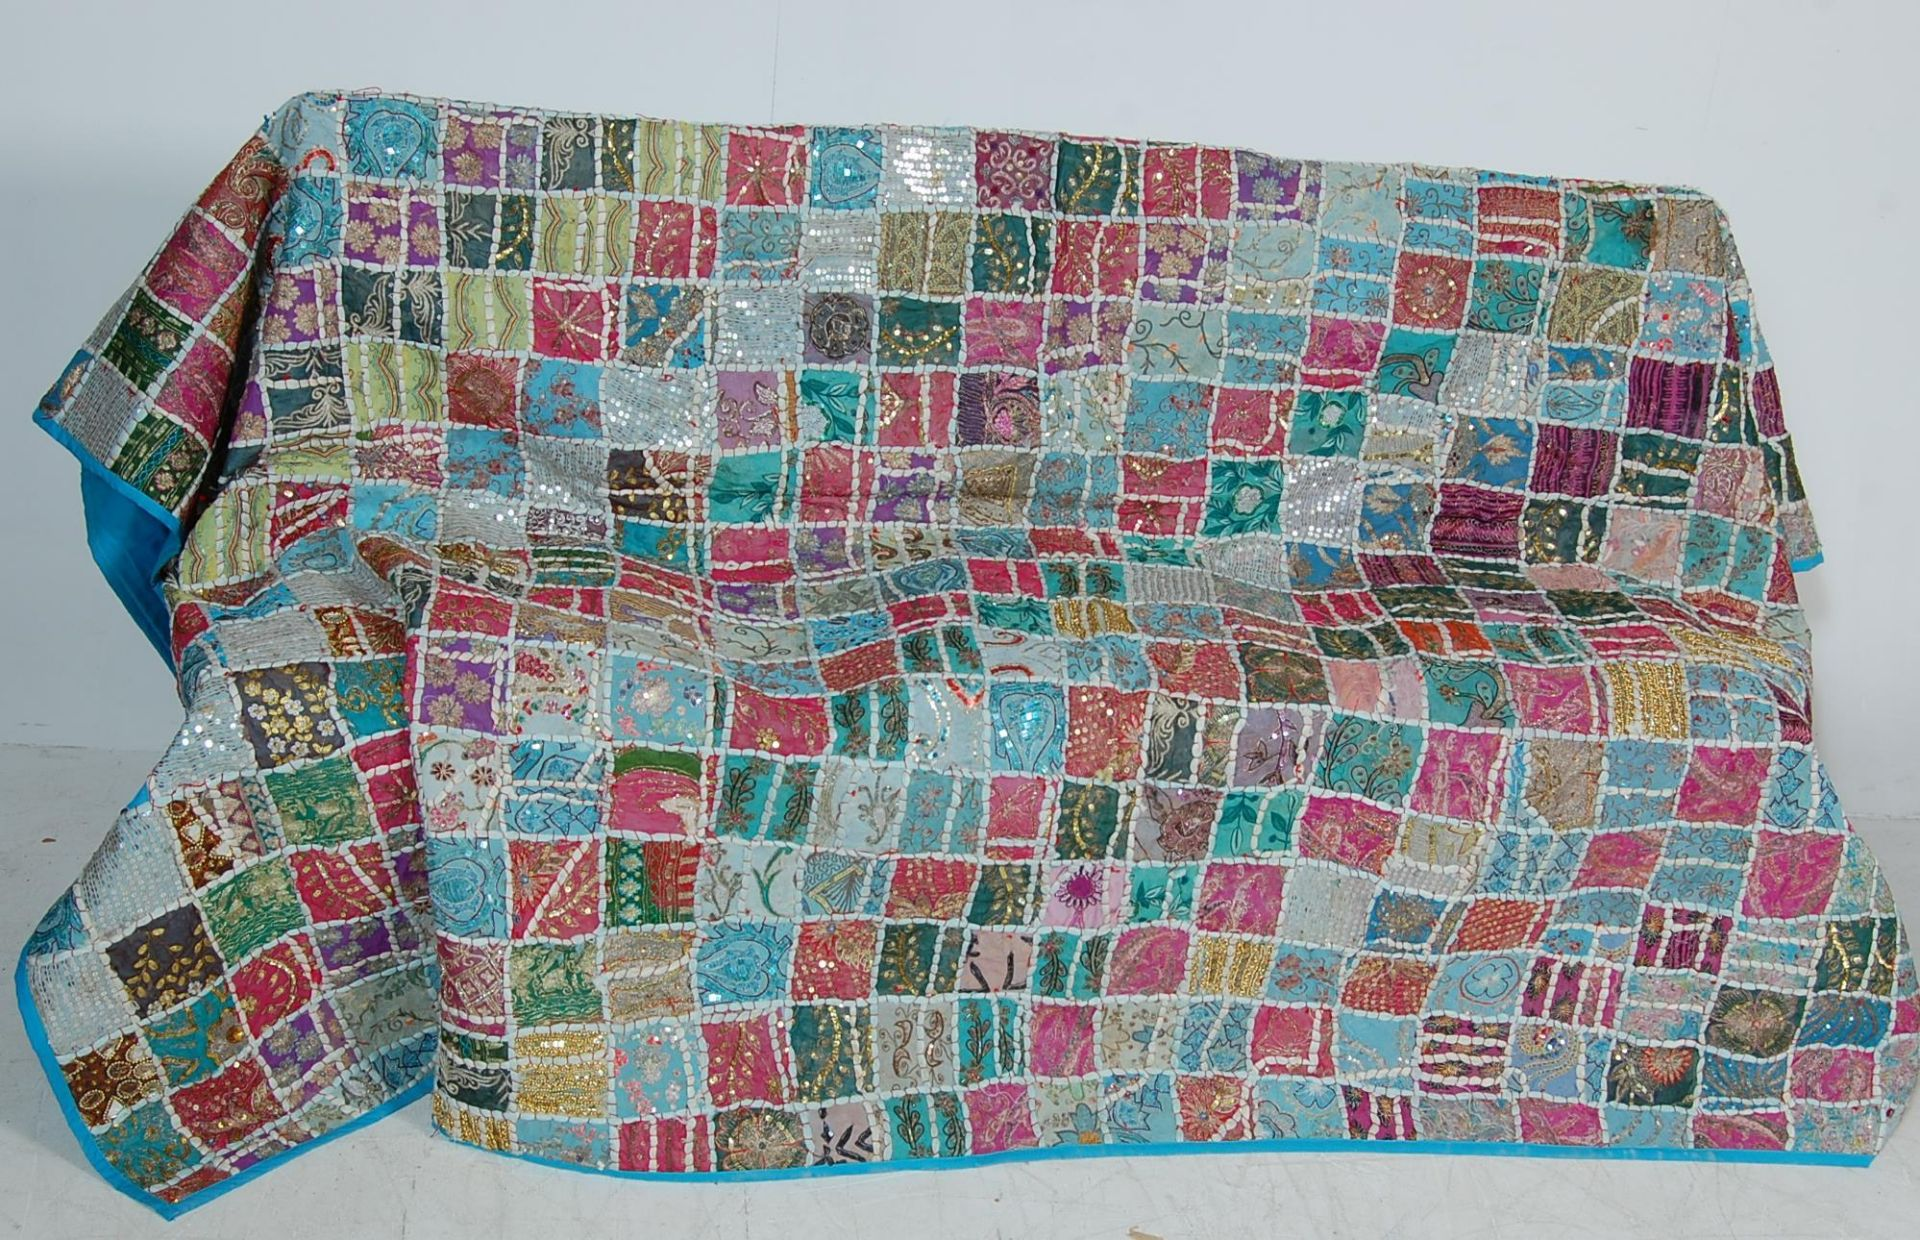 20TH CENTURY ANTIQUE STYLE TRADITIONAL PAKISTANI / RAJASTHANI / INDIAN PATCHWORK QUILT BED THROW - Image 2 of 11